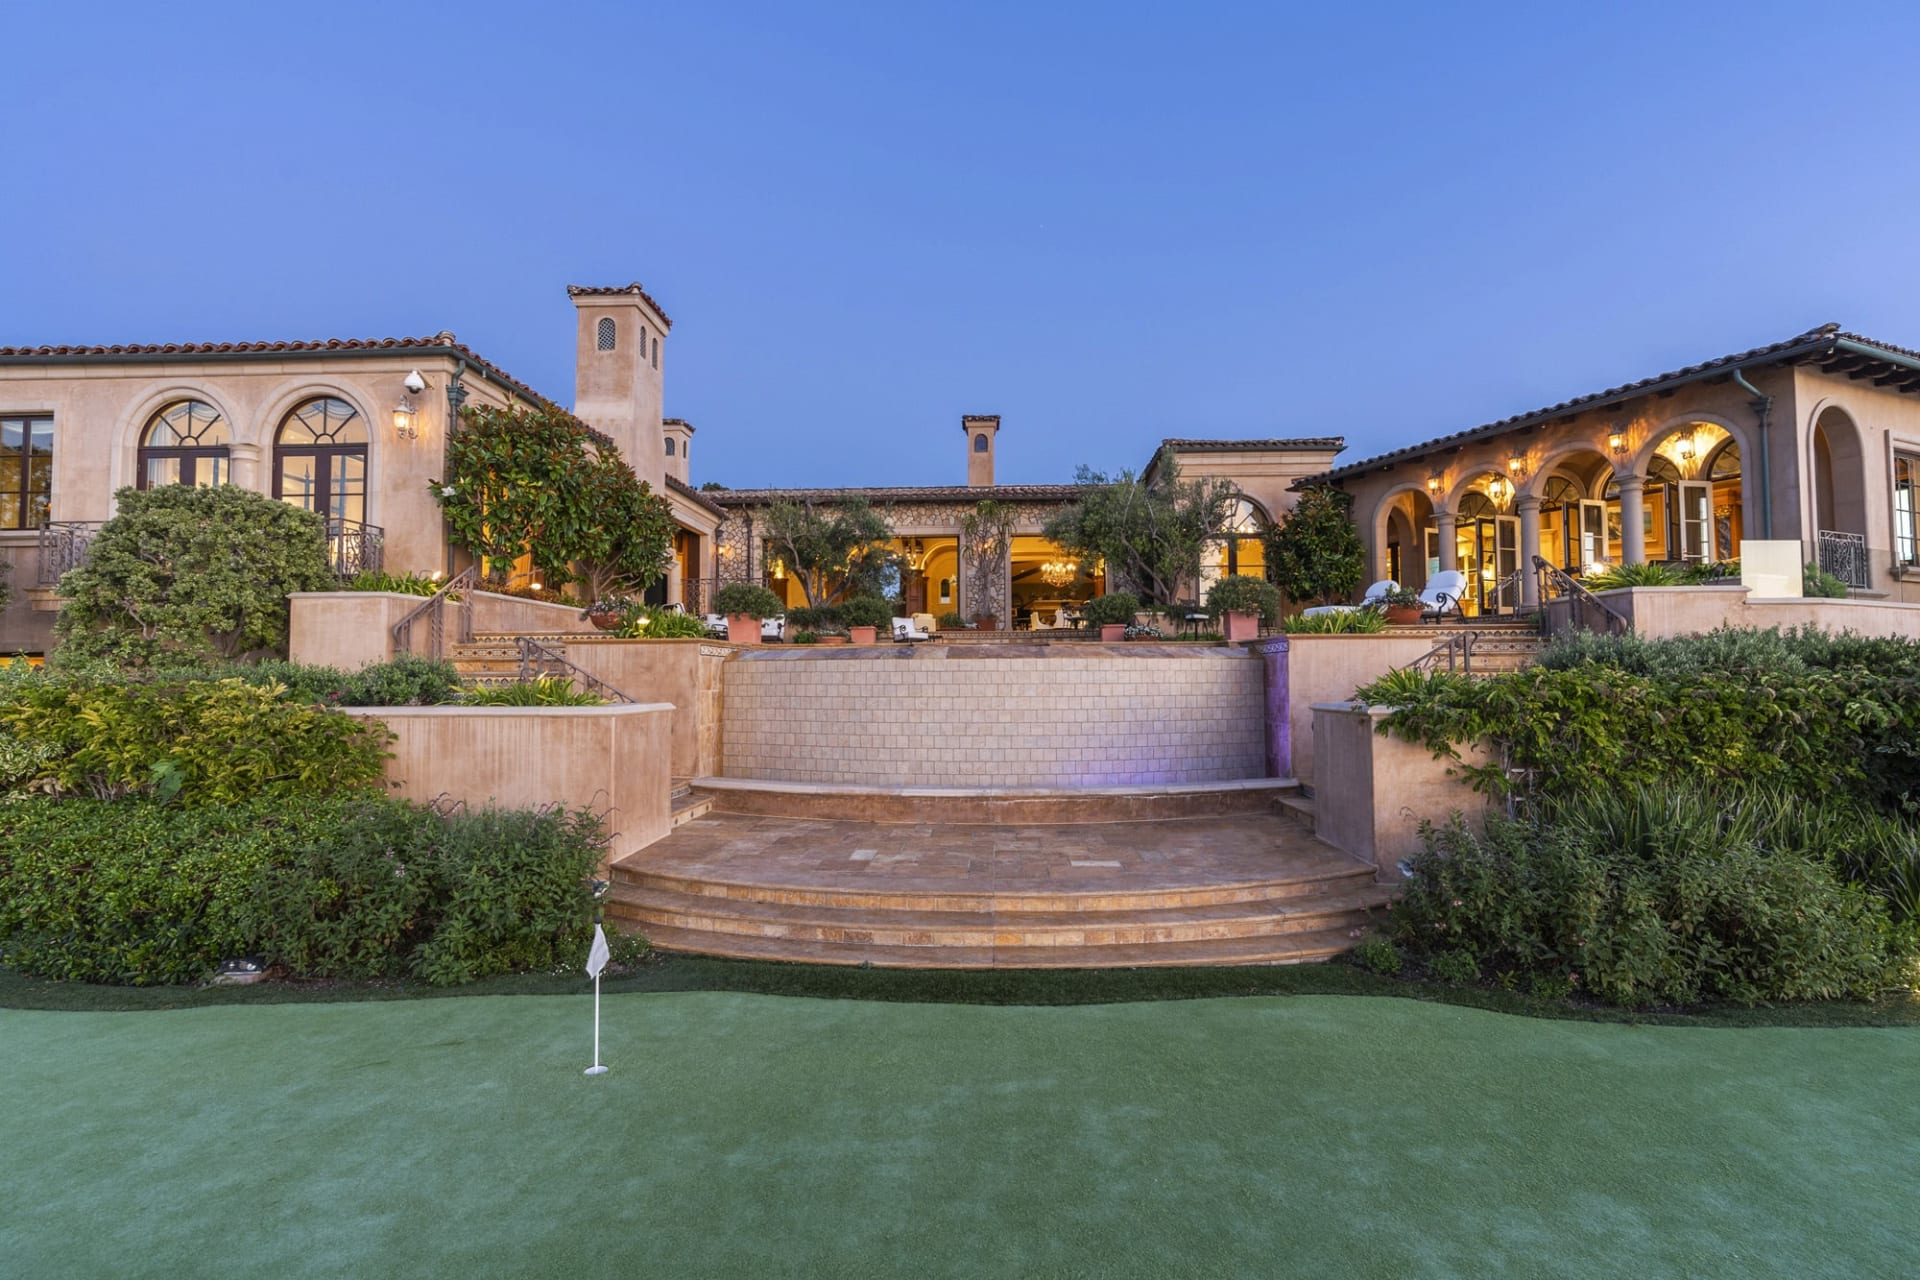 Resort Point Palos Verdes Masterpiece